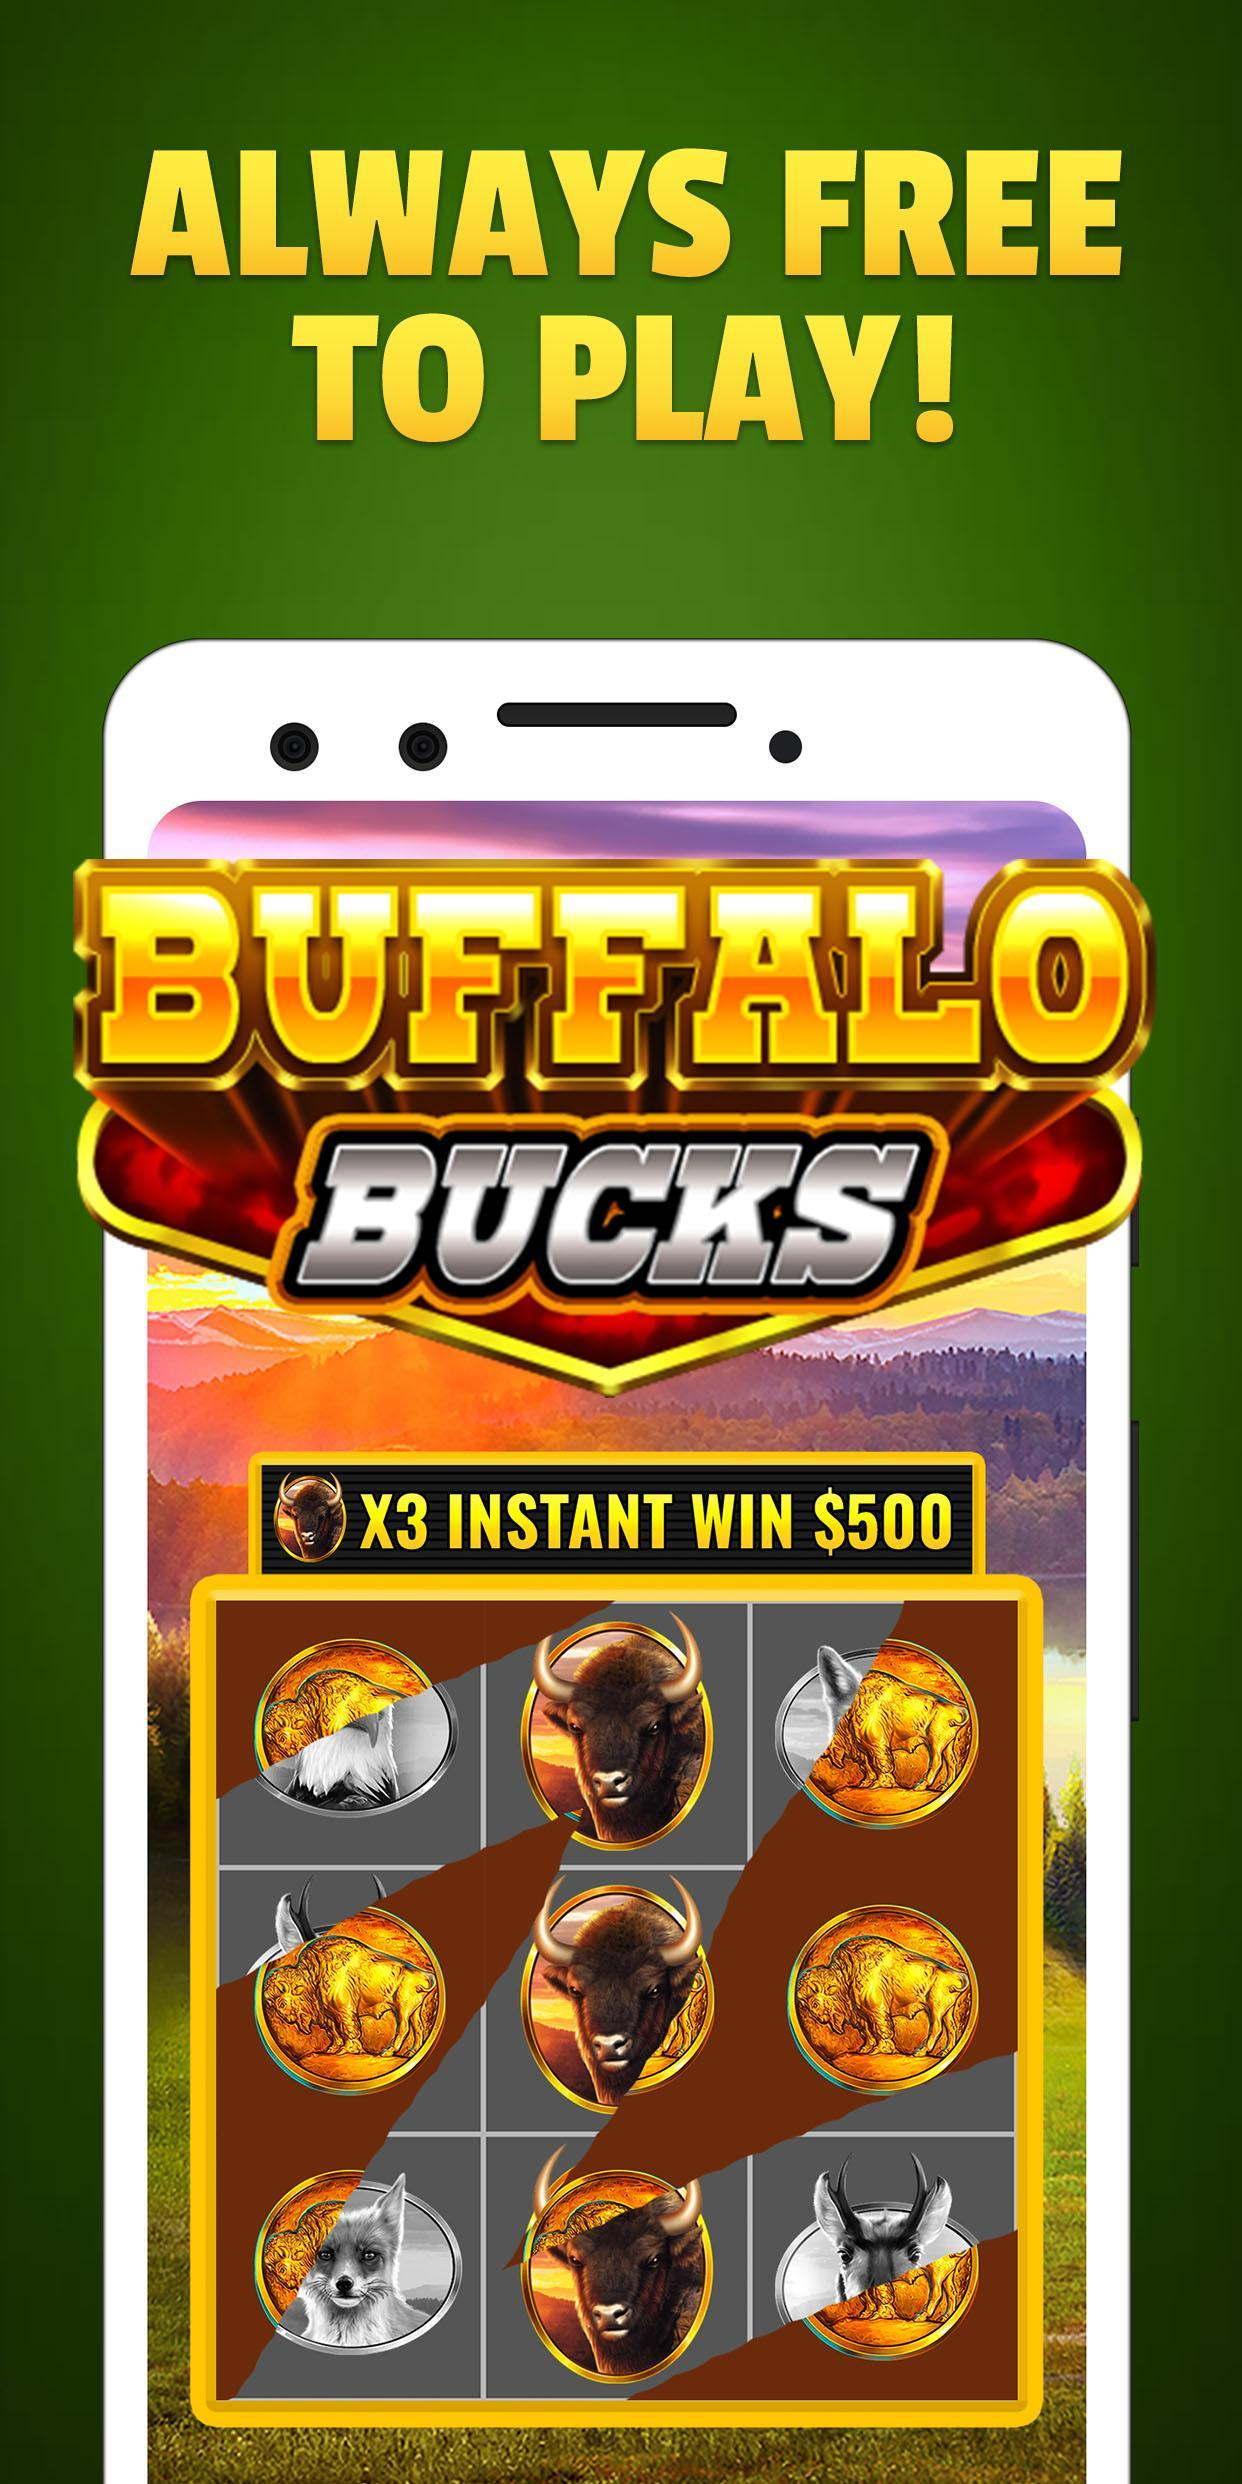 Lucky Scratch WIN REAL MONEY- it's your LUCKY DAY 47.0.0 Screenshot 1